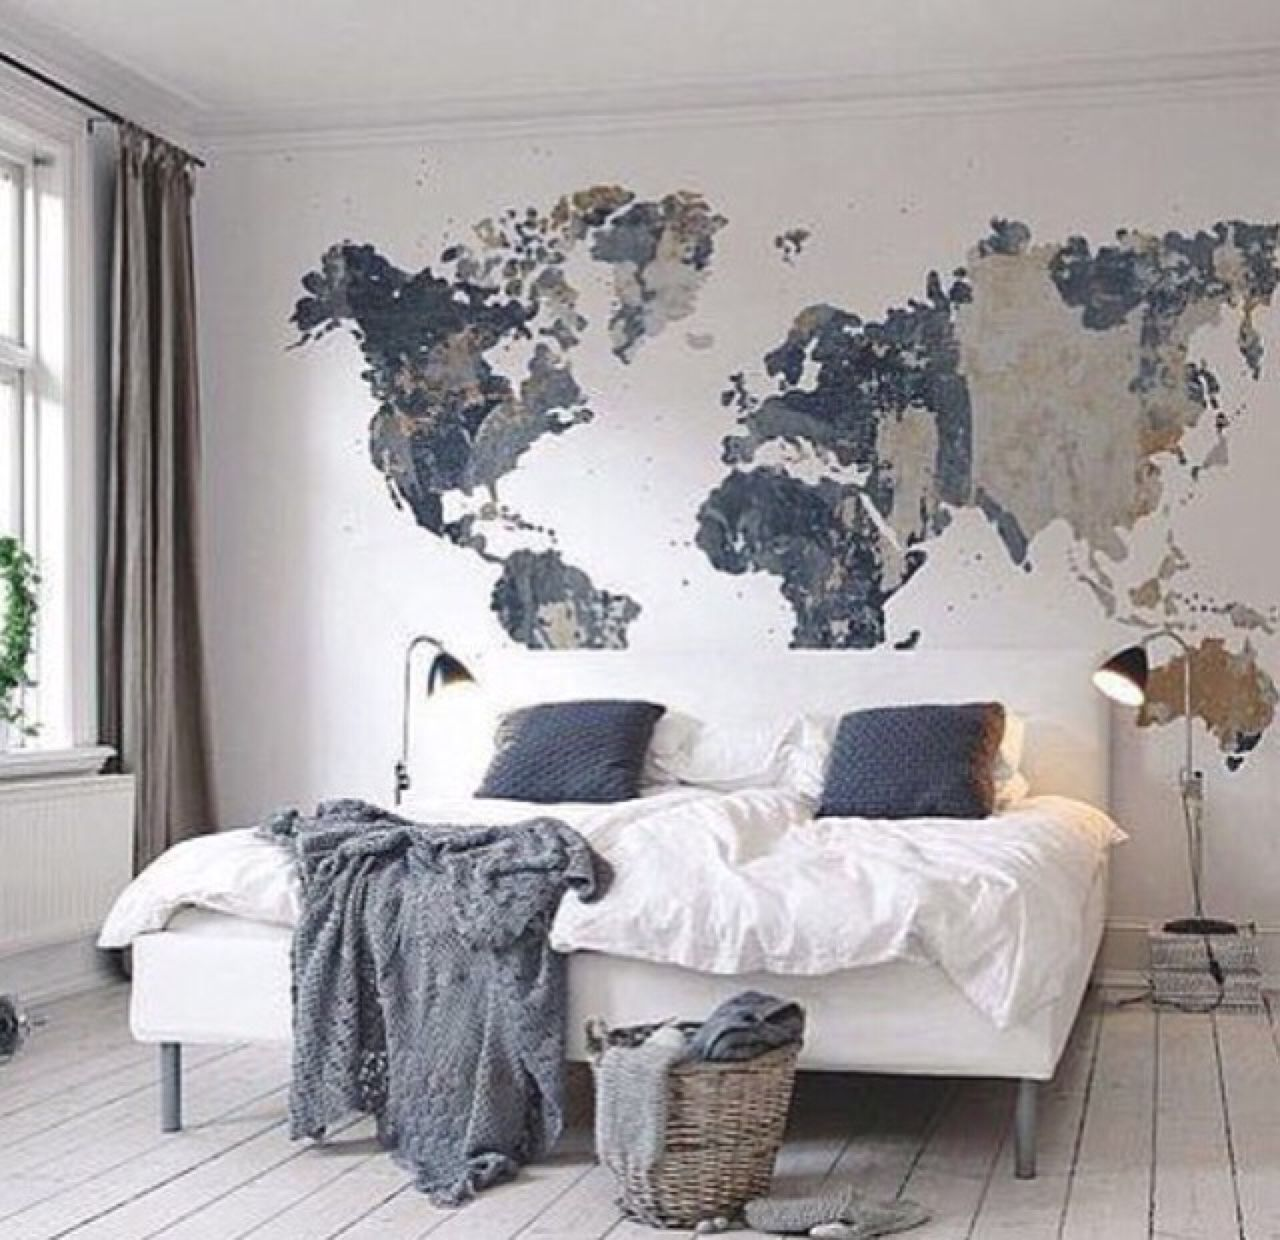 Cool map mural see various wall mural designs at httpwww cool map mural see various wall mural designs at httpinkshuffle amipublicfo Gallery